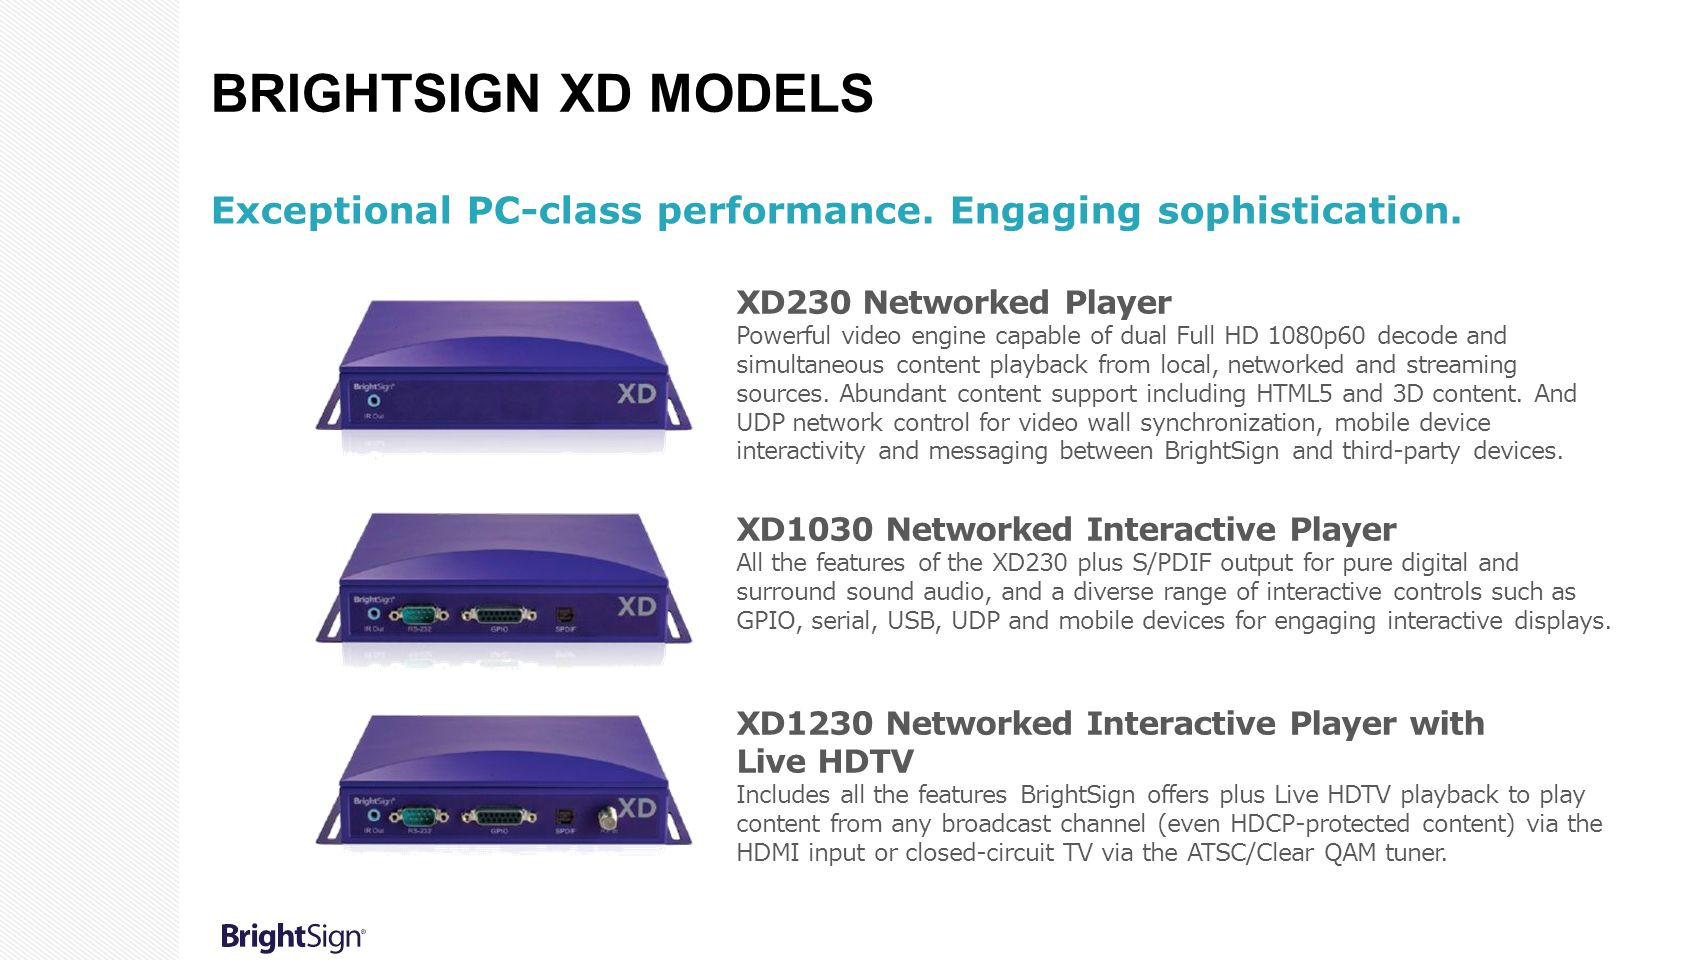 BRIGHTSIGN XD MODELS Exceptional PC-class performance. Engaging sophistication. XD230 Networked Player Powerful video engine capable of dual Full HD 1